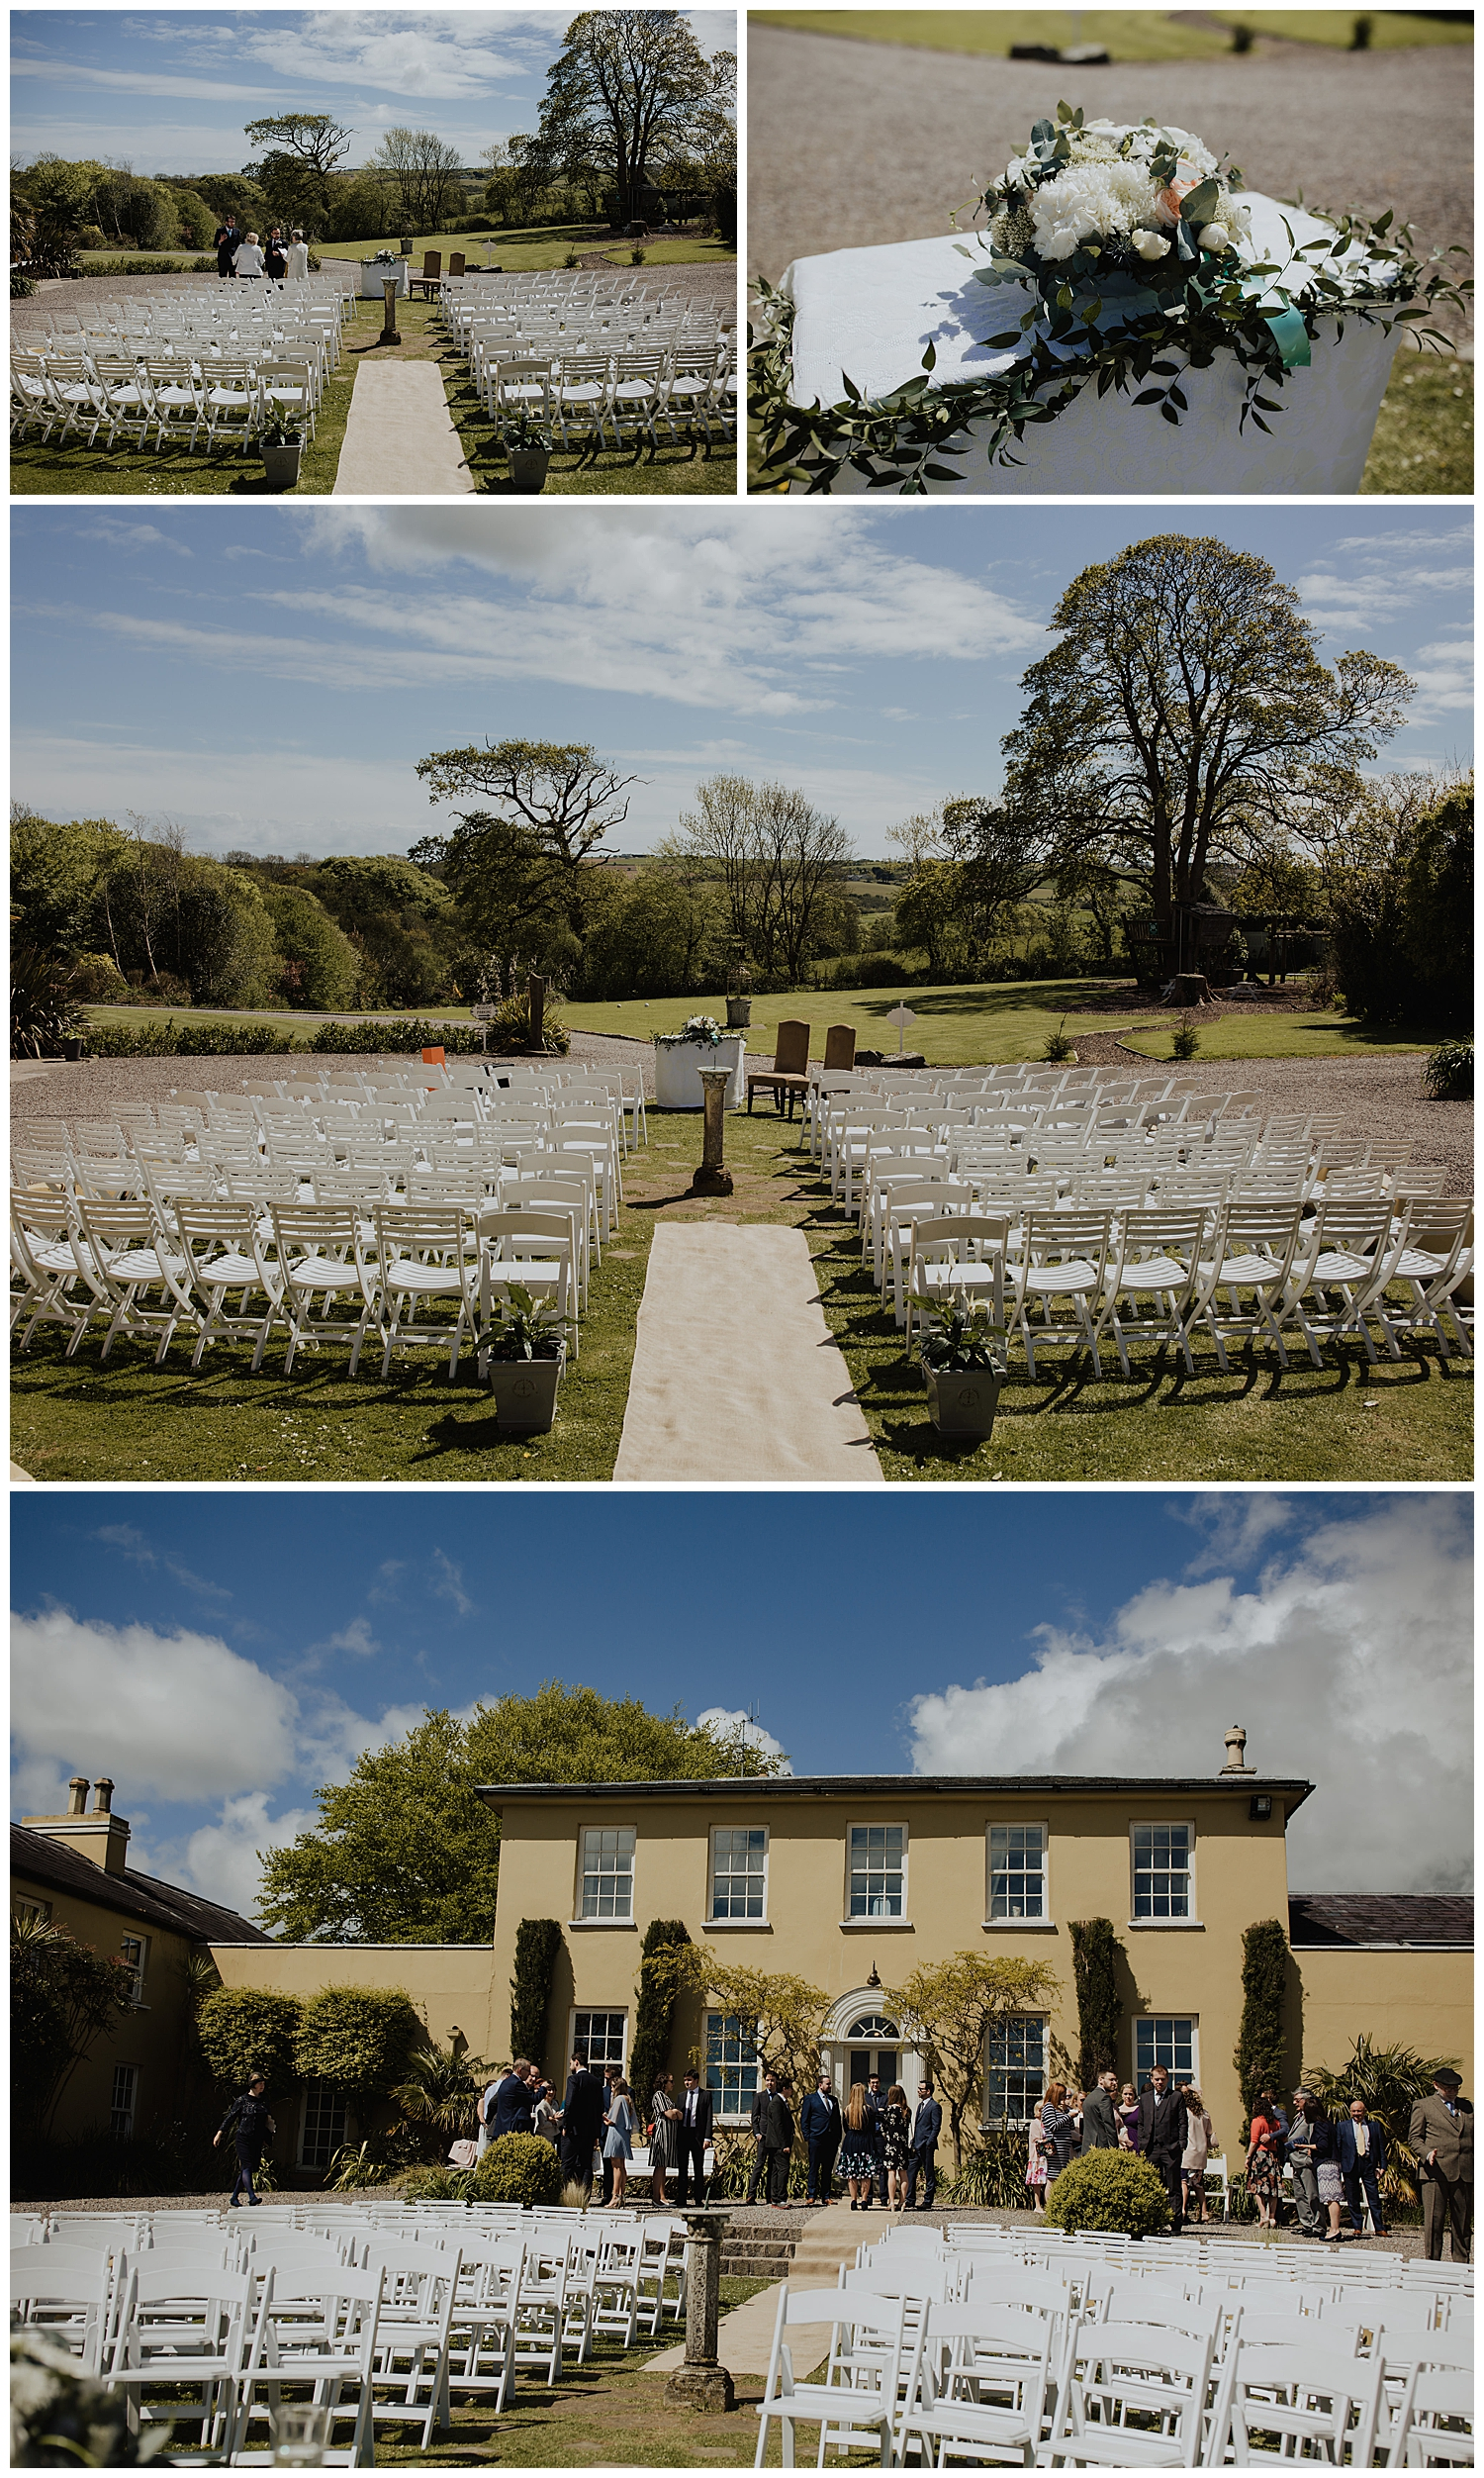 ballinacurra_house_wedding_cork_wedding_venue_wedding_photographer_ireland_livia_figueiredo_15.jpg